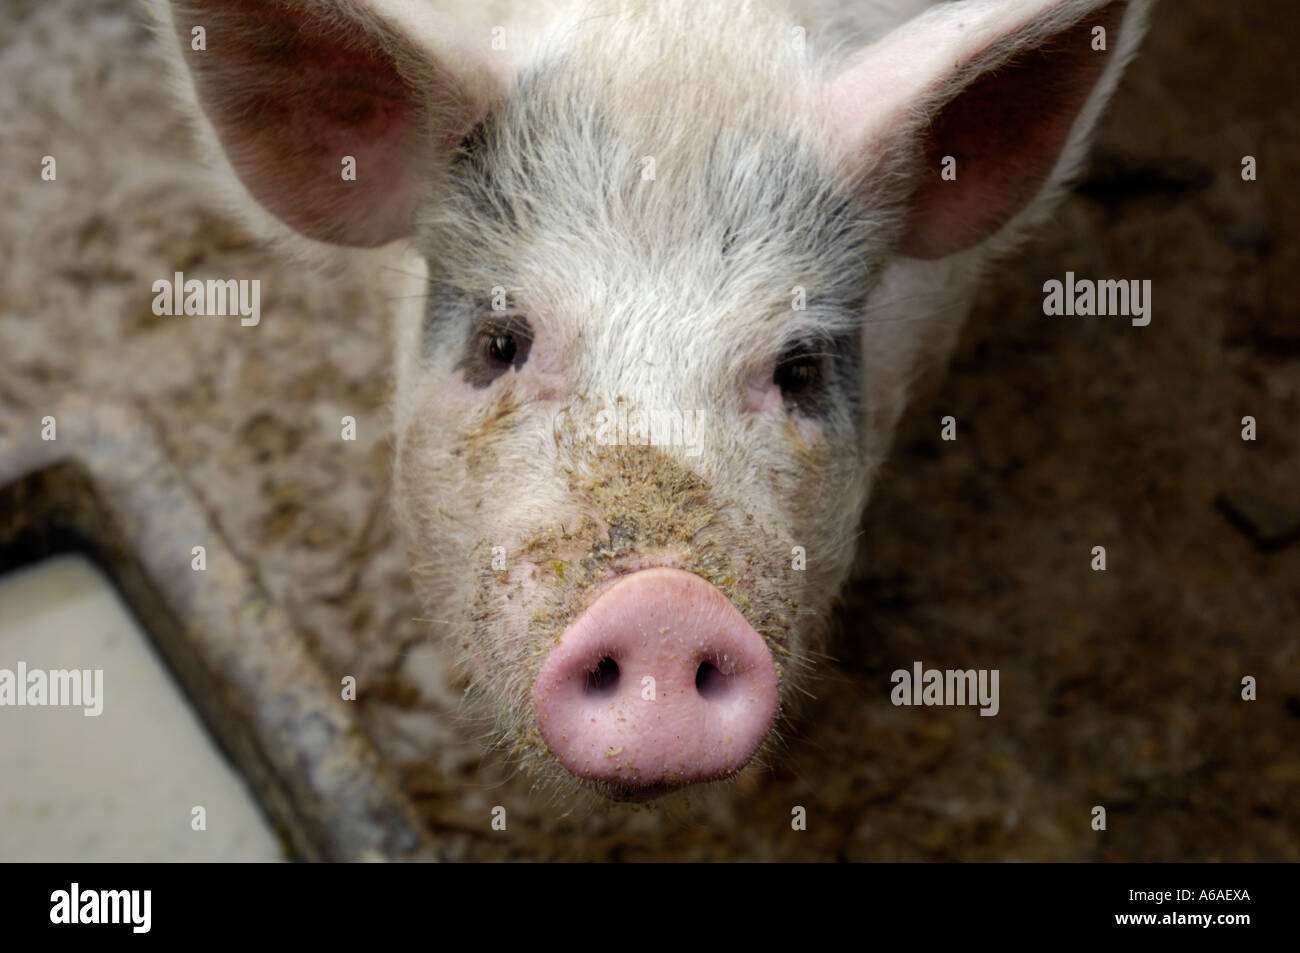 a pig in a rural village of Jiangxi, China. Feb 2 2006 - Stock Image